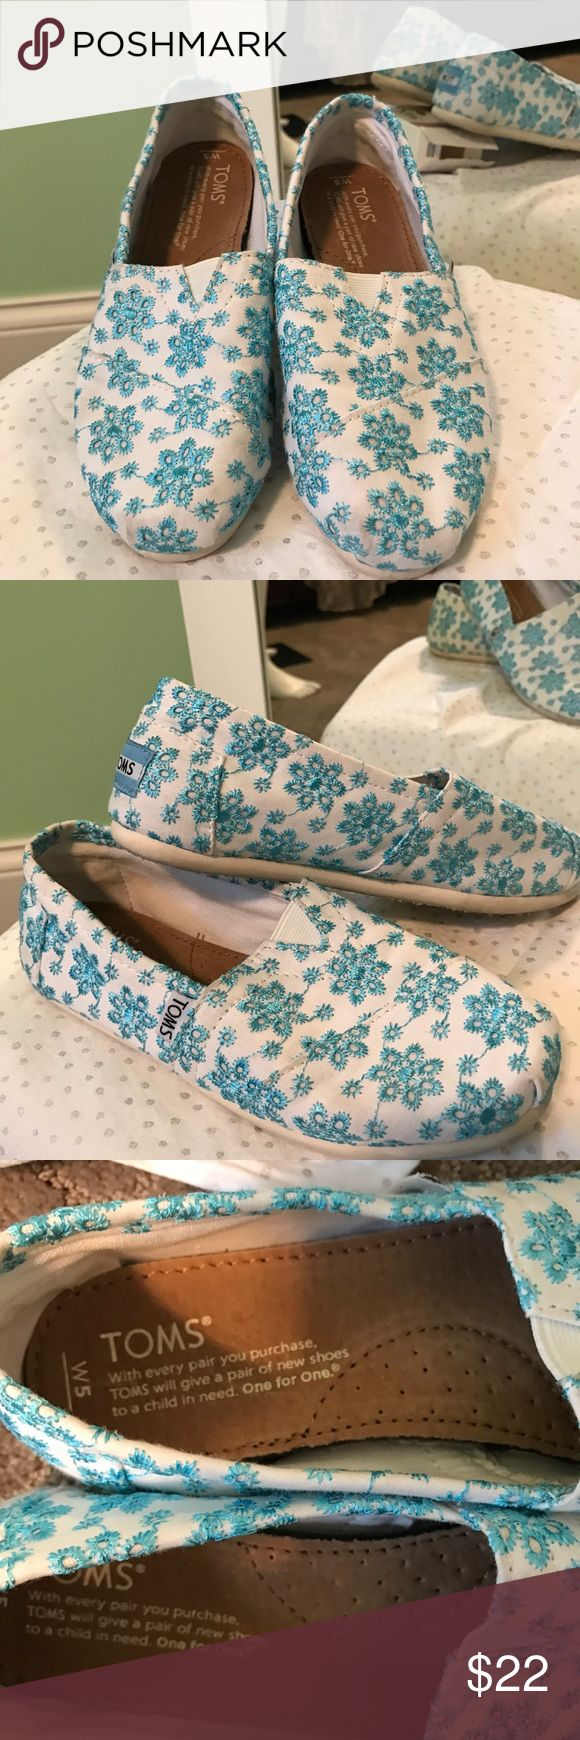 Light blue floral embroidered Toms. Sweet little blue floral Toms. TOMS Shoes Flats & Loafers